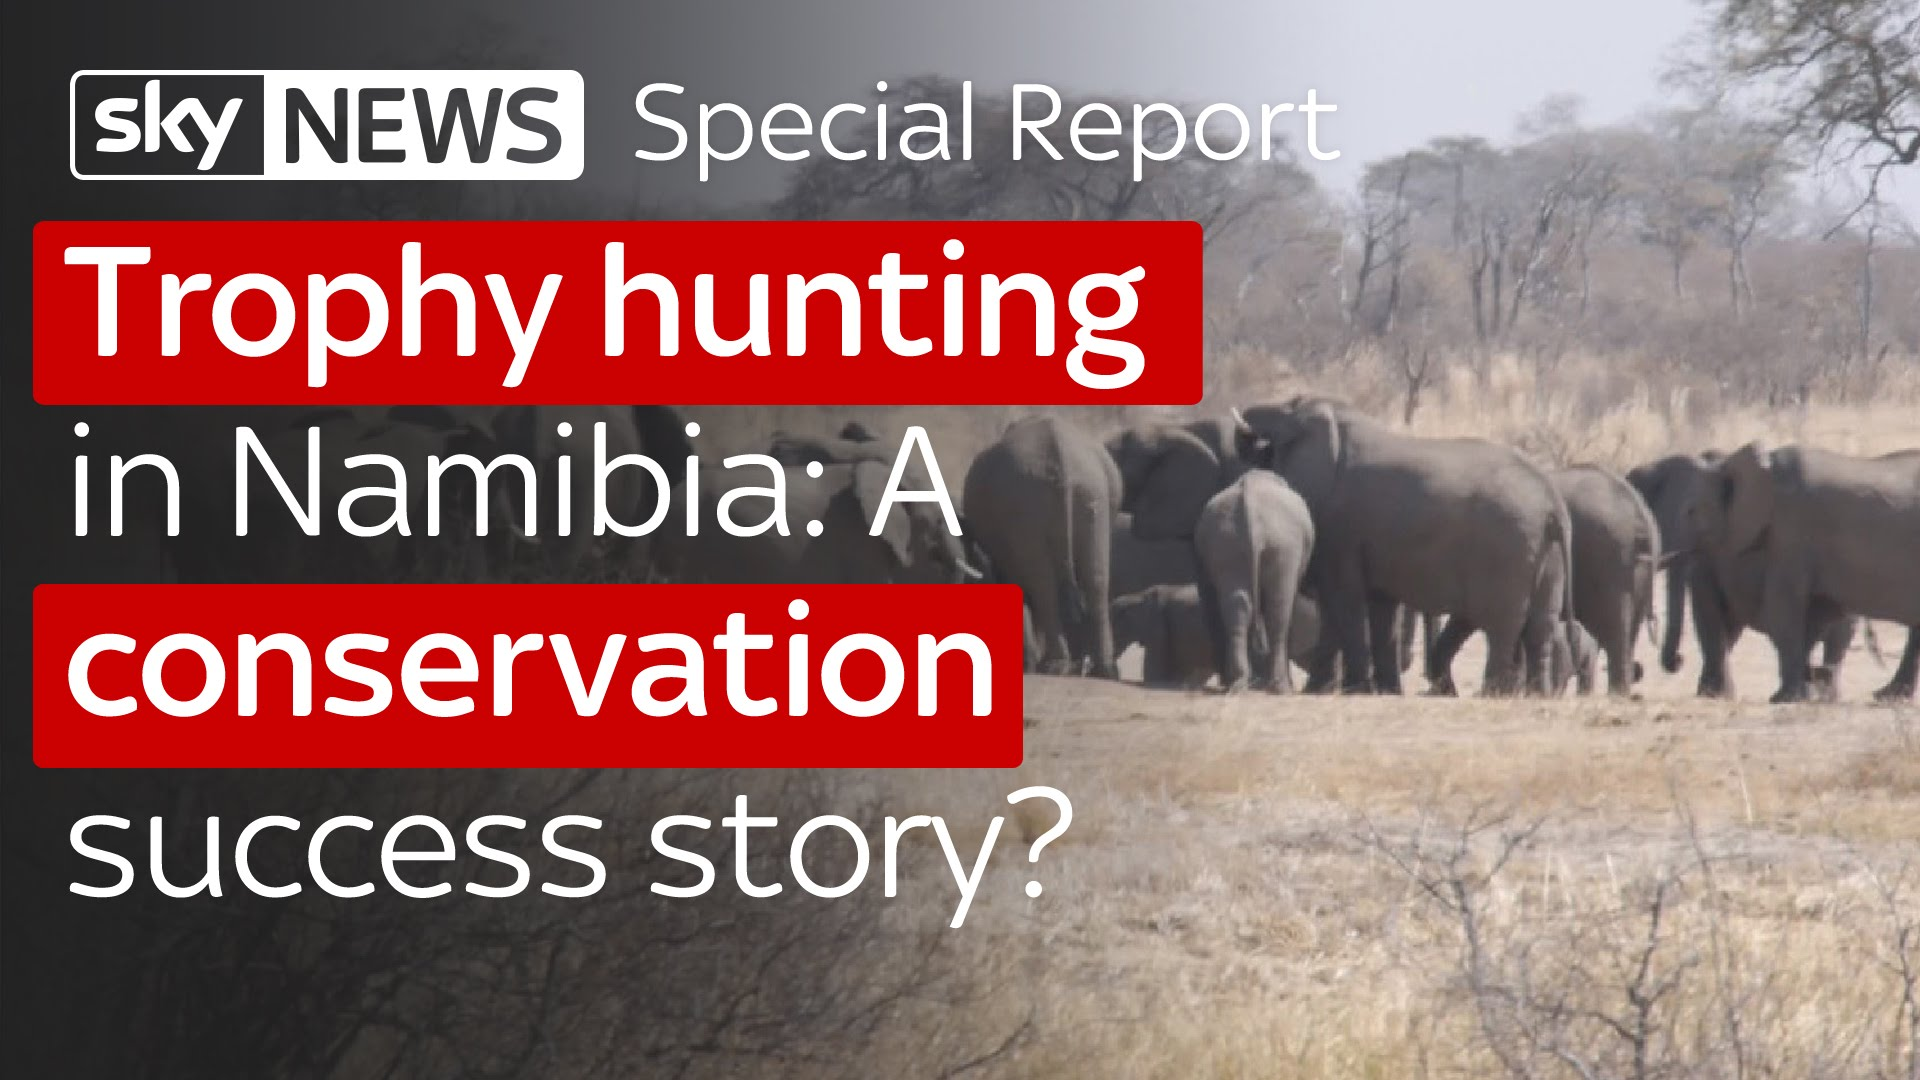 Trophy hunting in Namibia: A conservation success story? 7